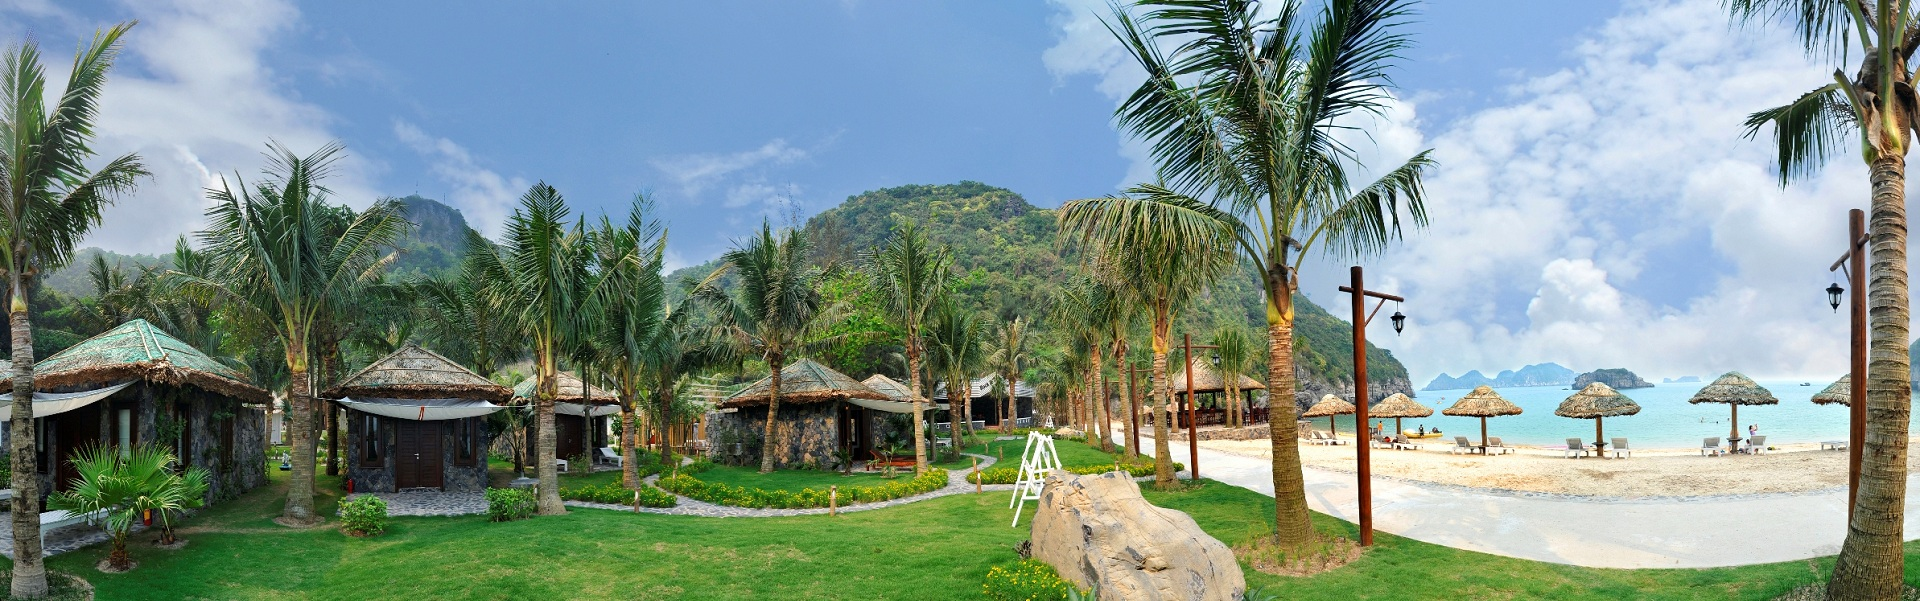 Canh quan Cat Ba Beach Resort